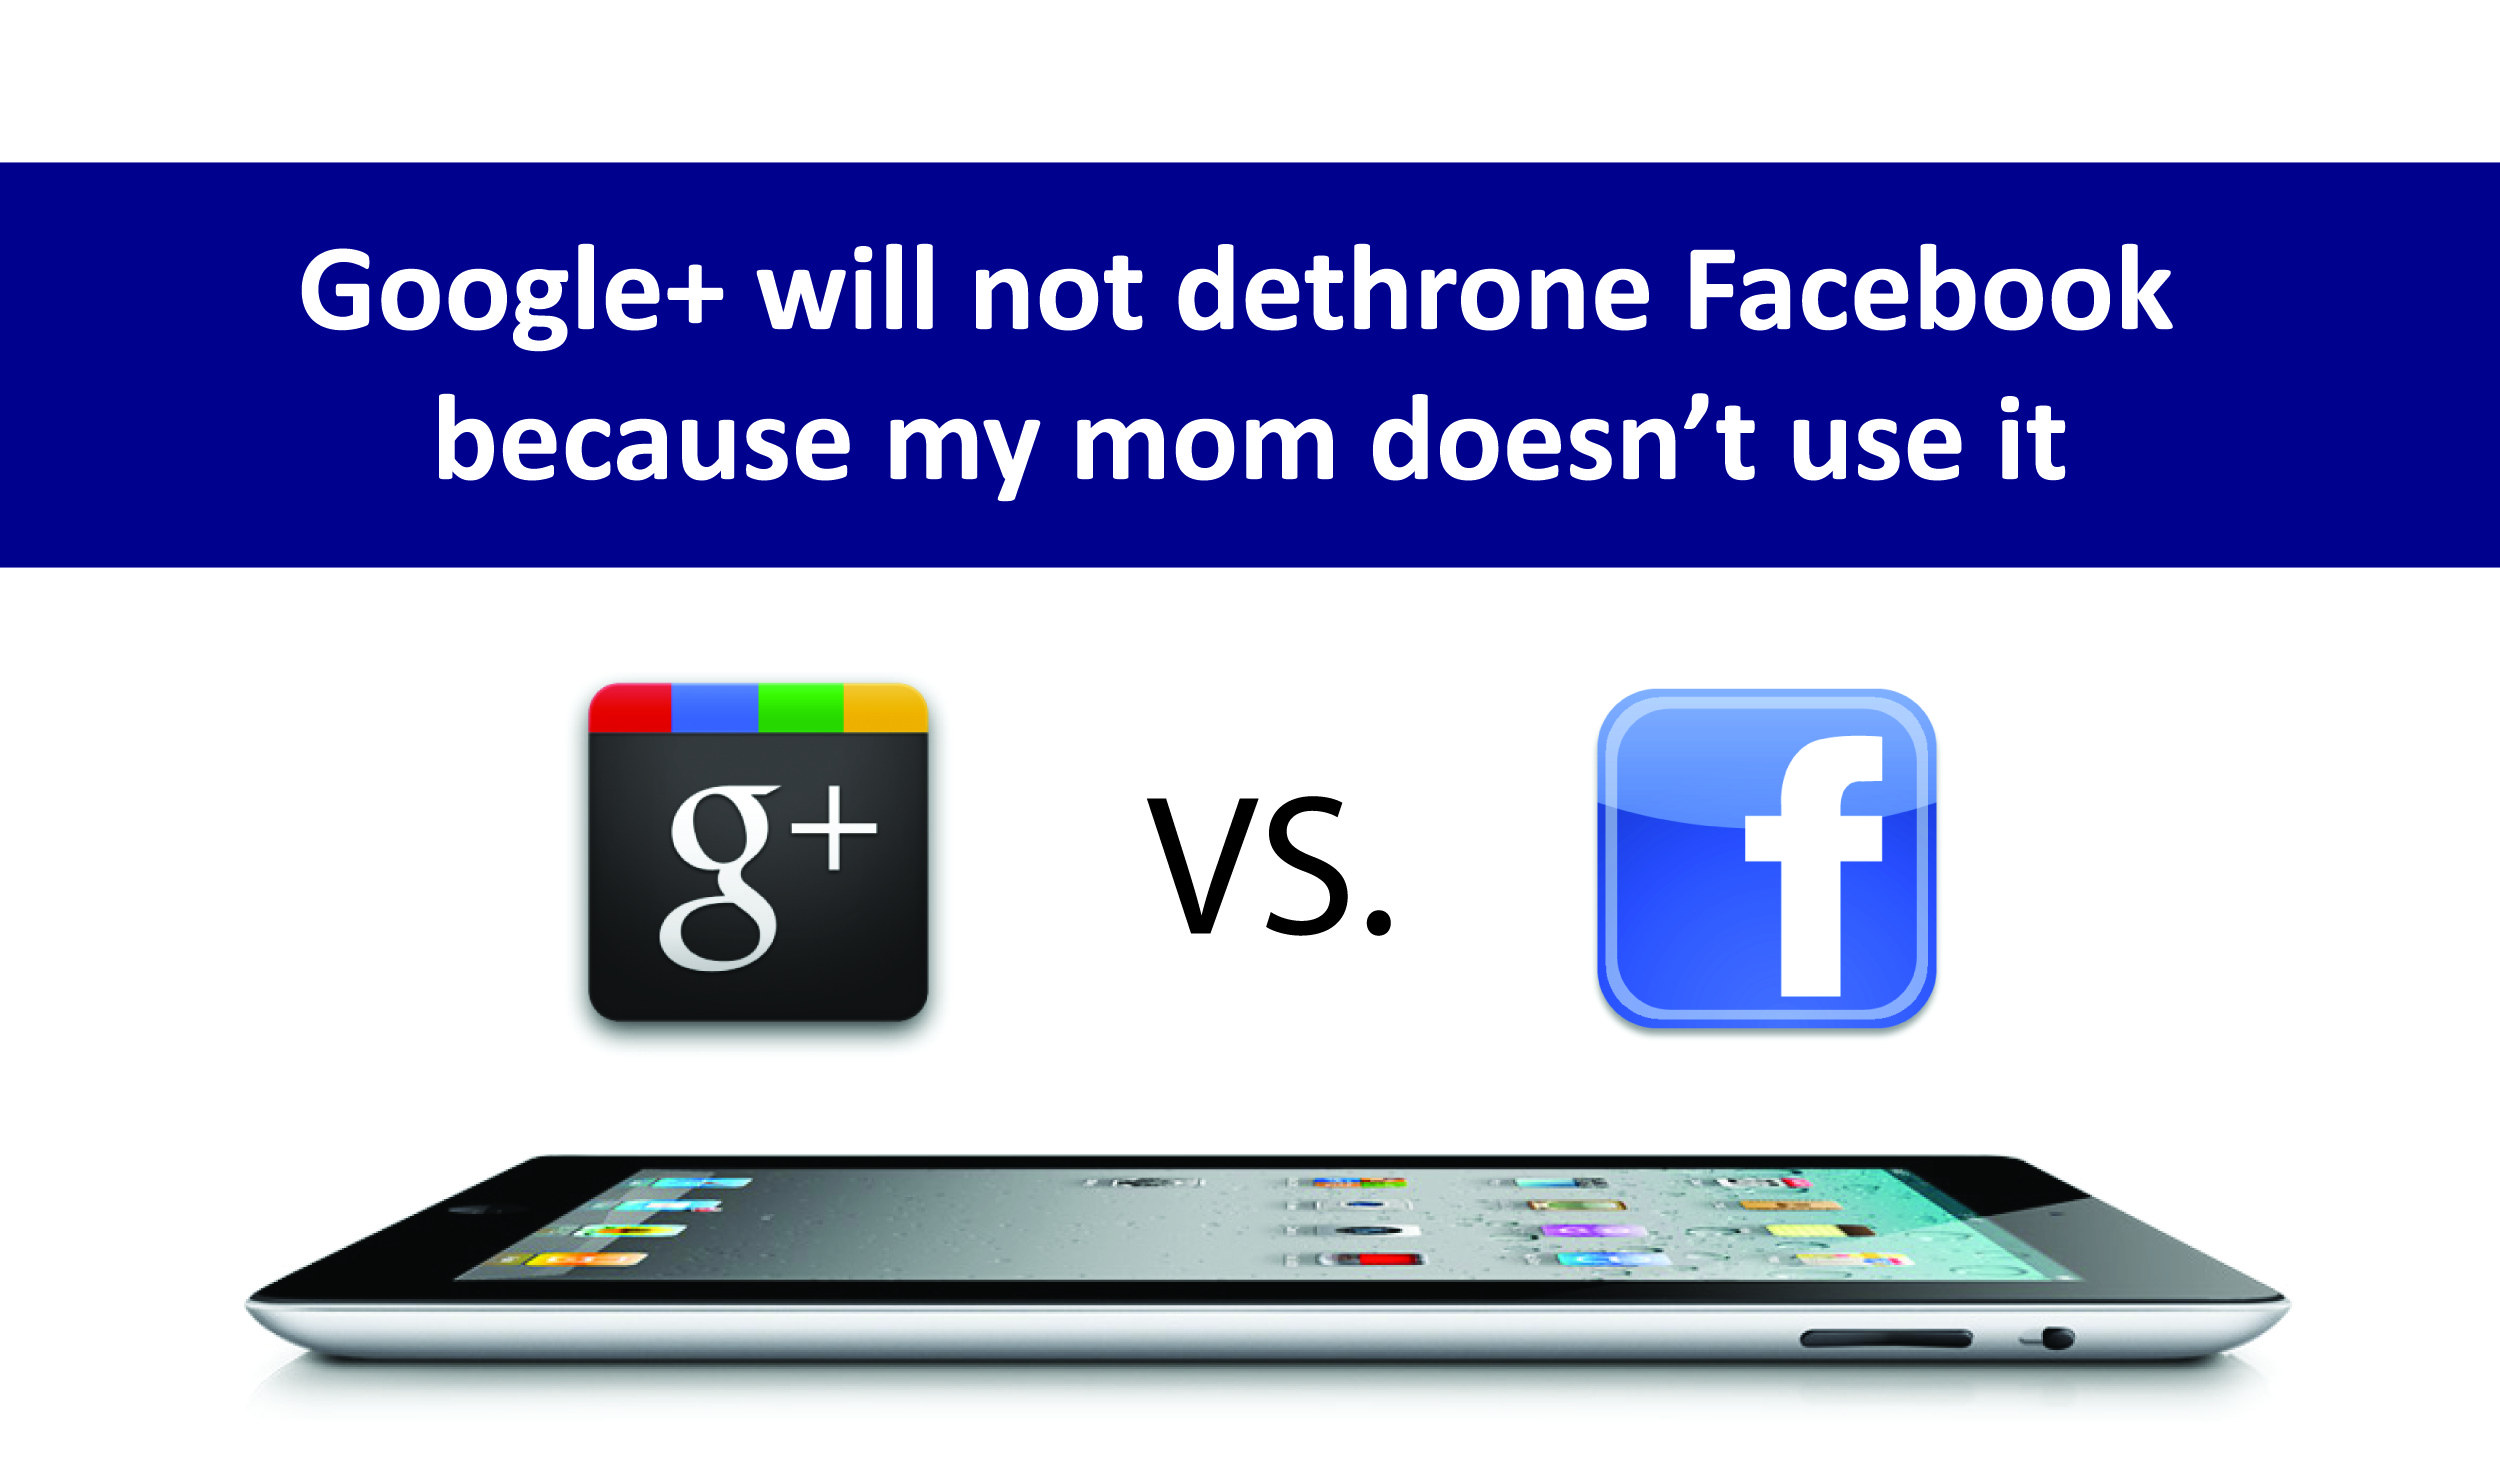 Google+ will not dethrone Facebook because my mom doesn't use it